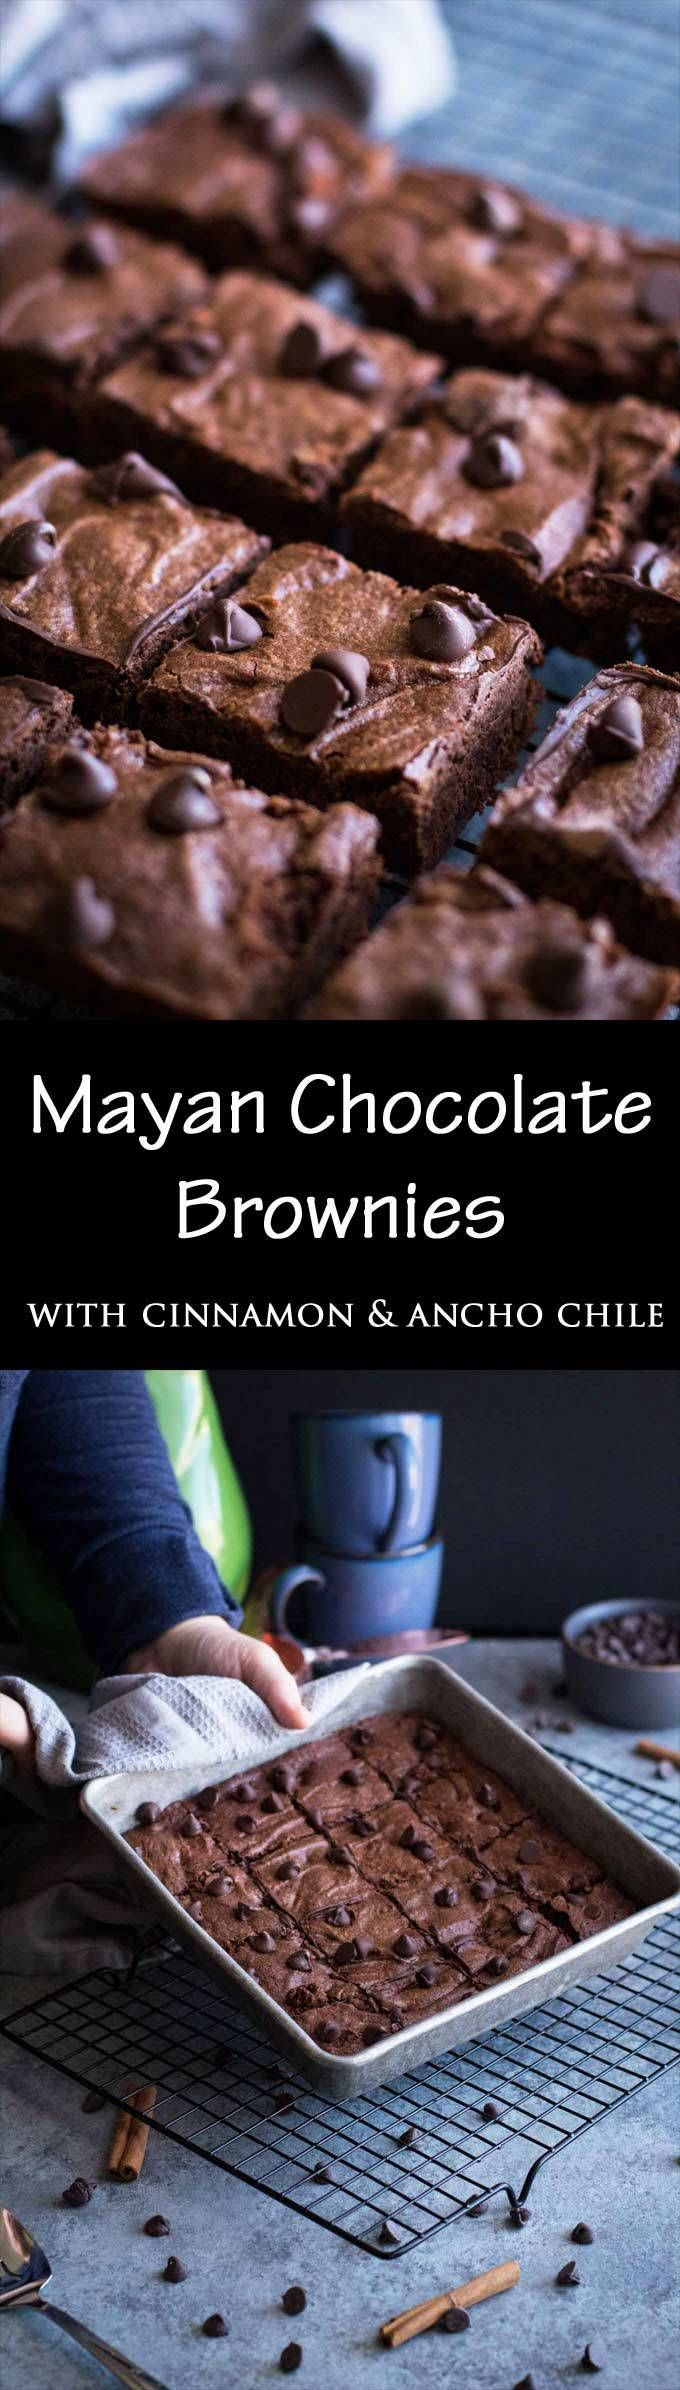 These Mayan Chocolate Brownies are a fool-proof easy recipe for fudgey brownies with hints of cinnamon and ancho chile!